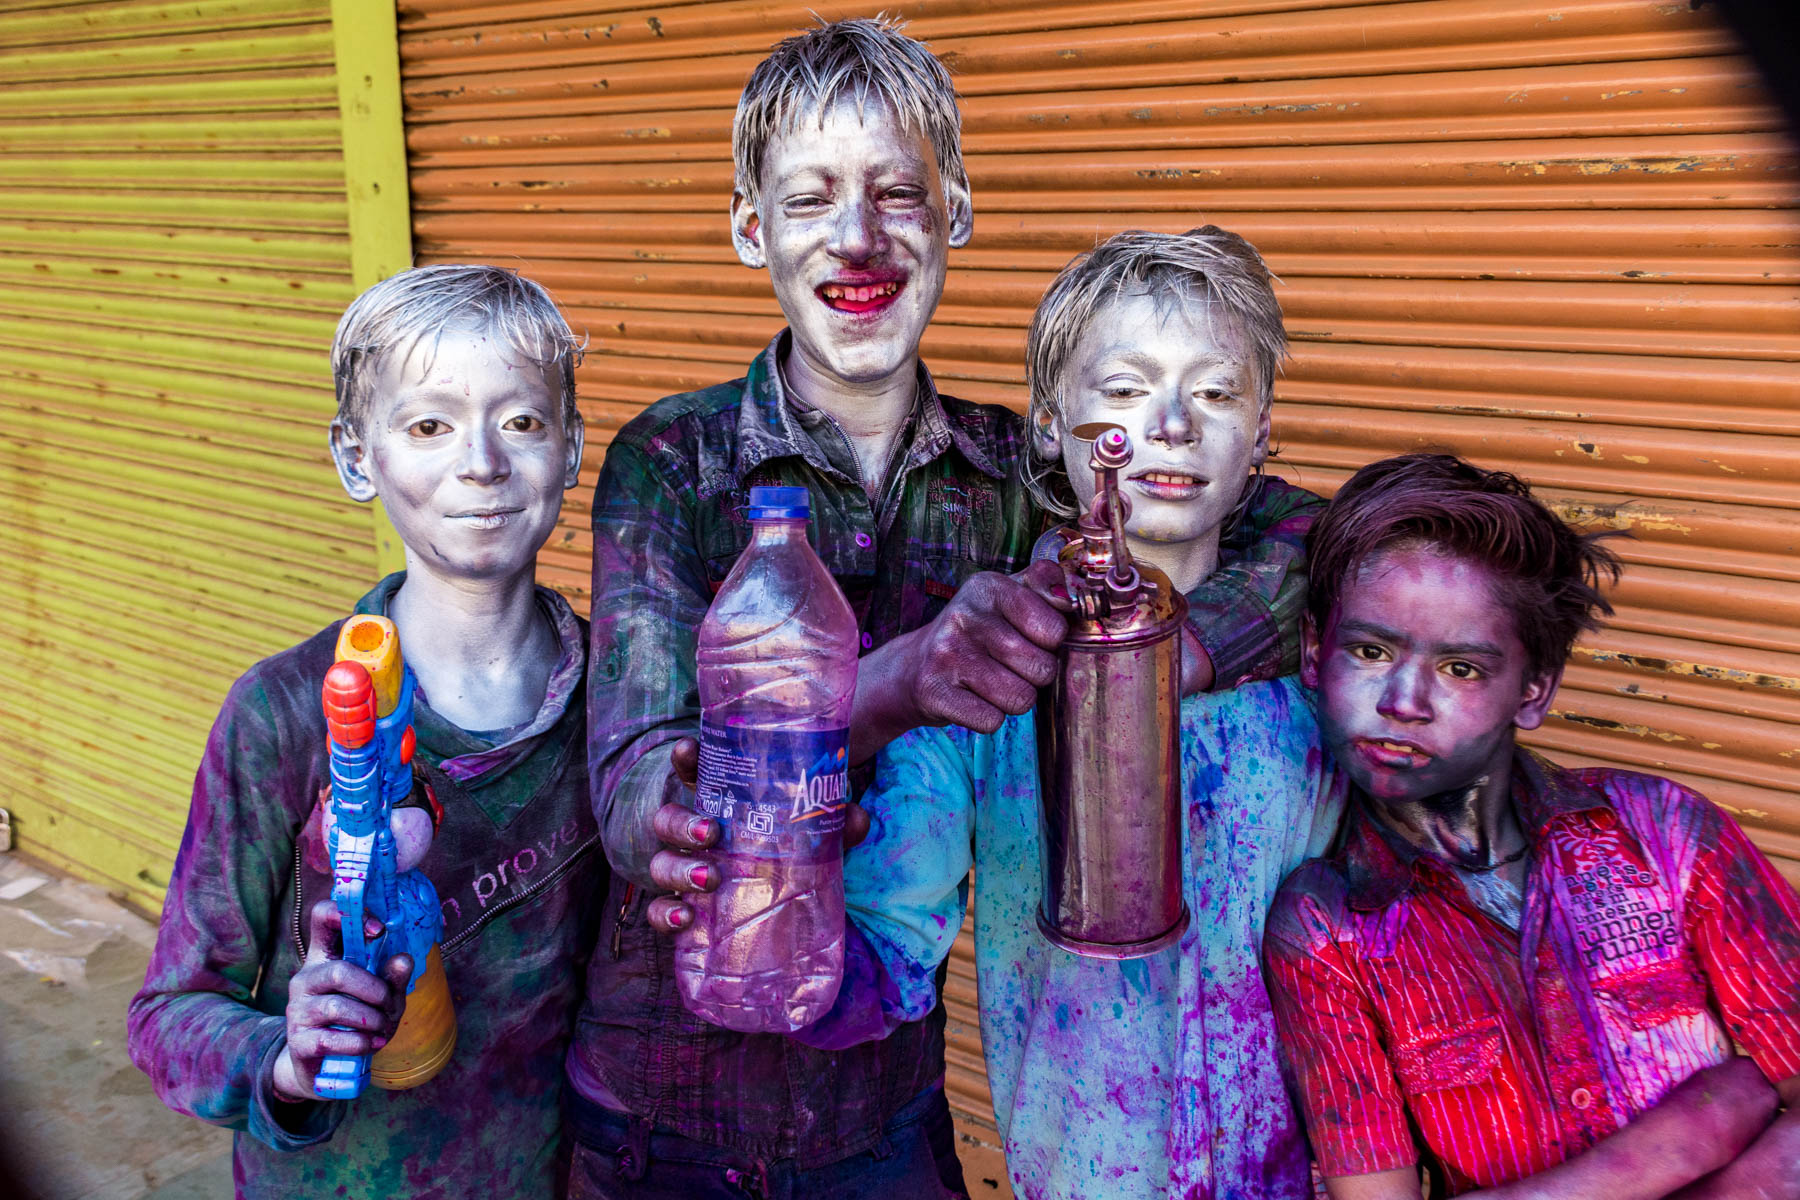 What you need know about playing Holi in Varanasi, India - Local boys painted silver for Holi - Lost With Purpose